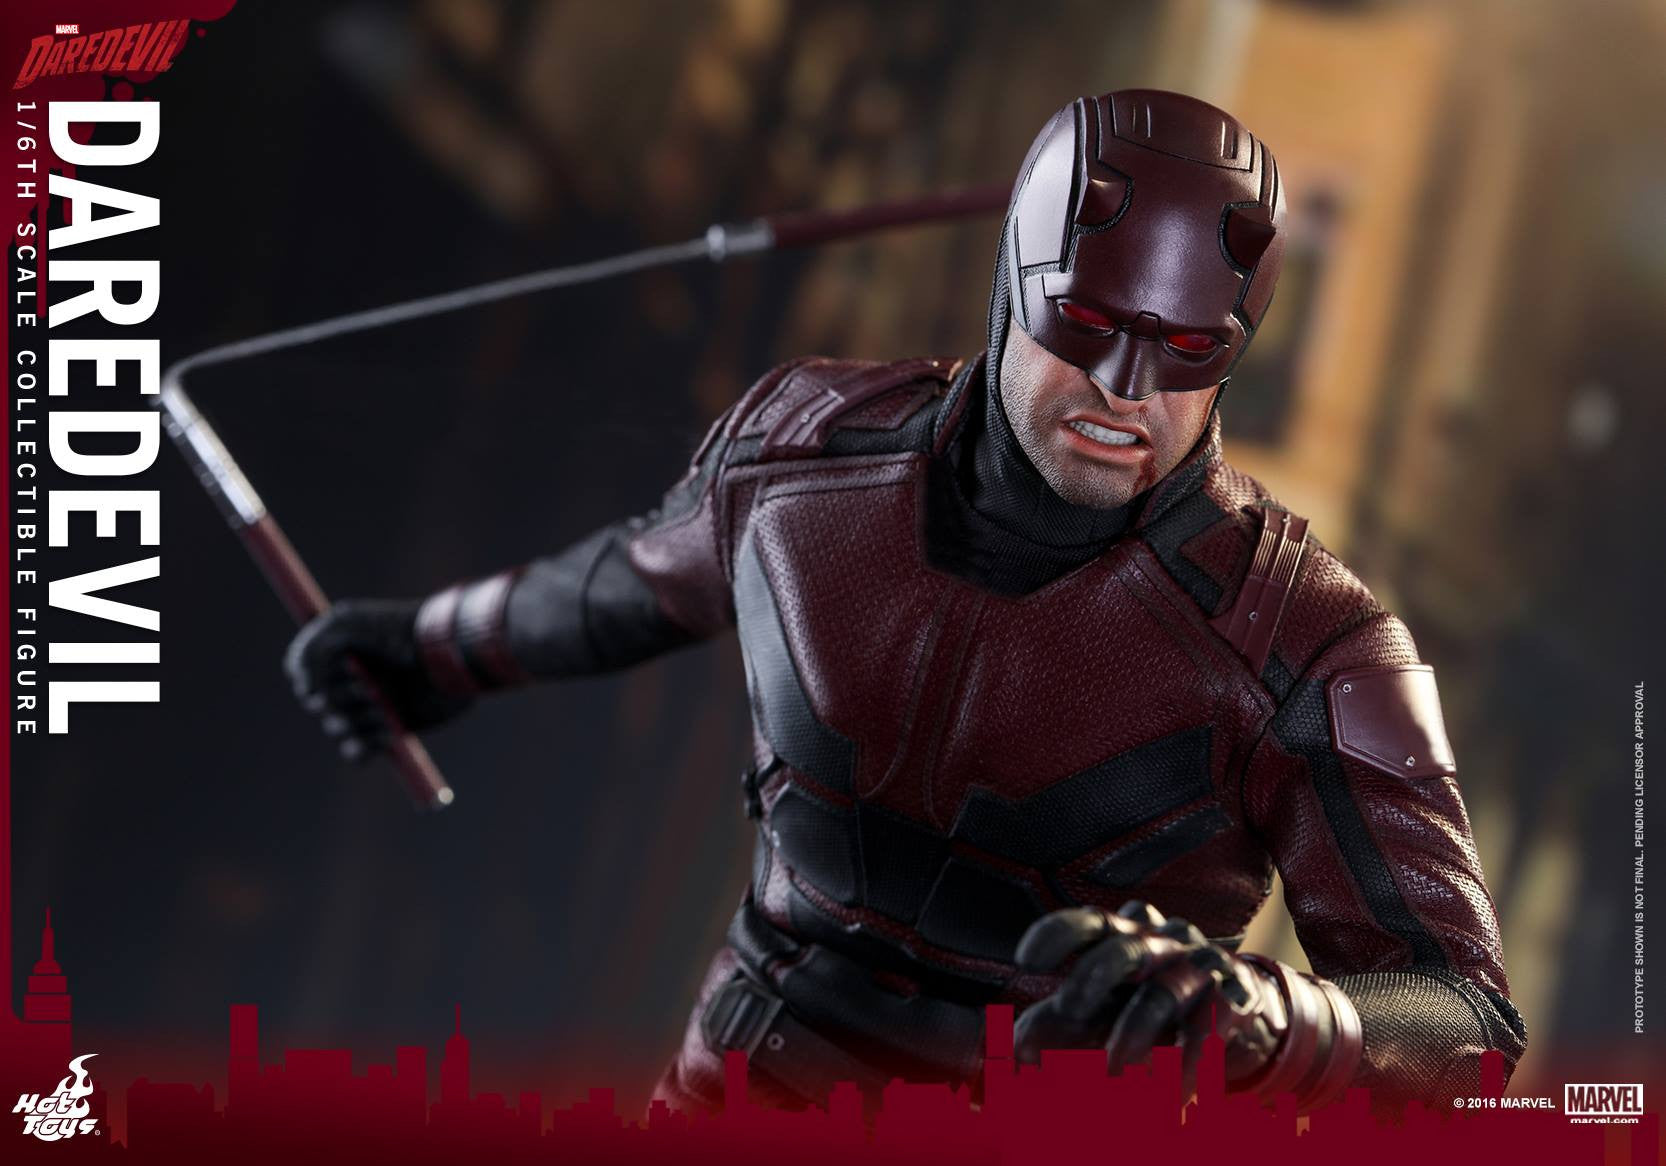 Hot Toys - TMS003 - Marvel's Daredevil - Daredevil - Marvelous Toys - 20